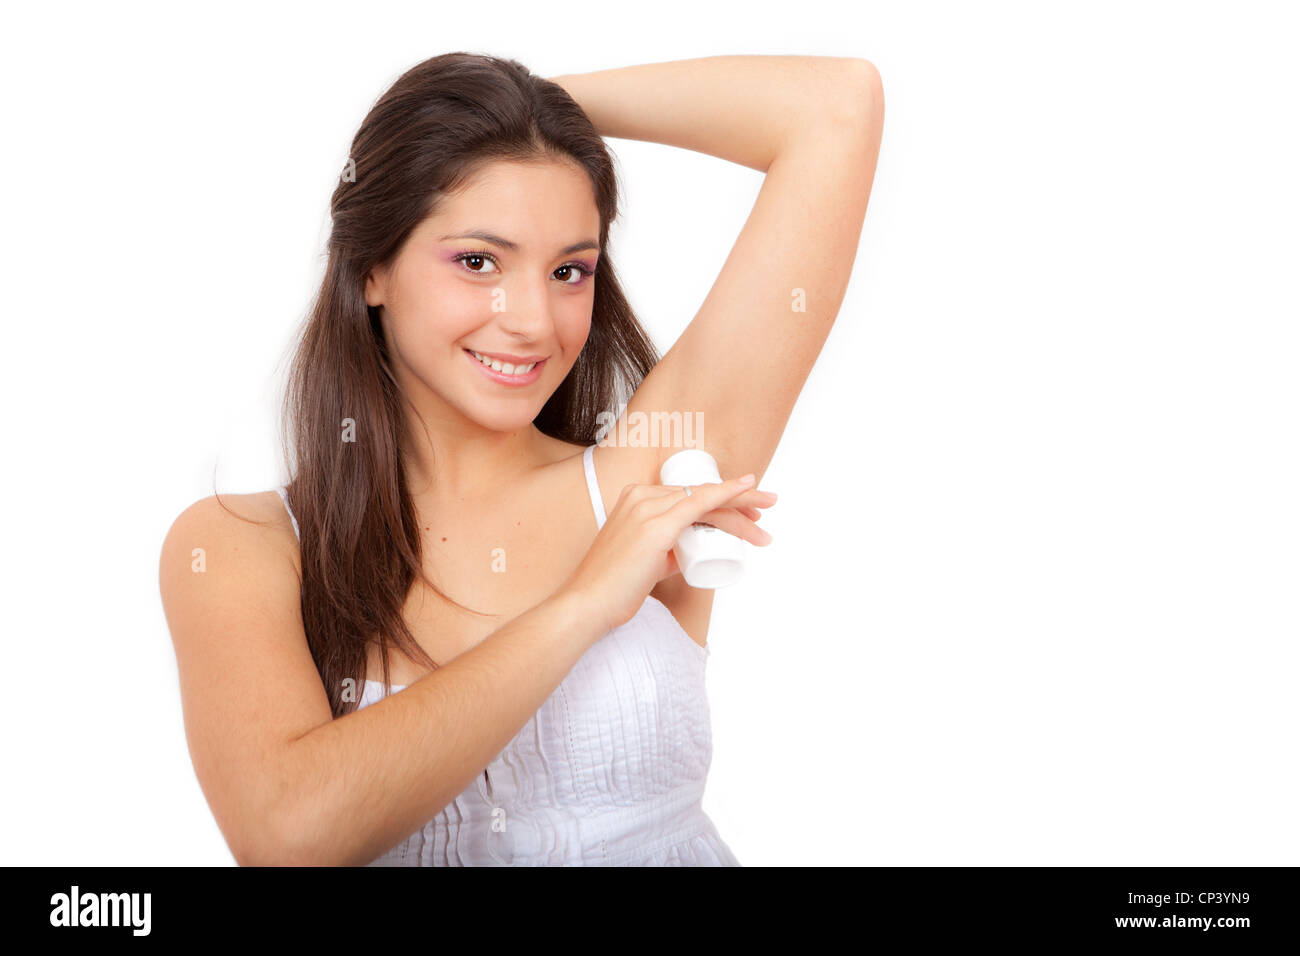 young woman putting on deodorant - Stock Image